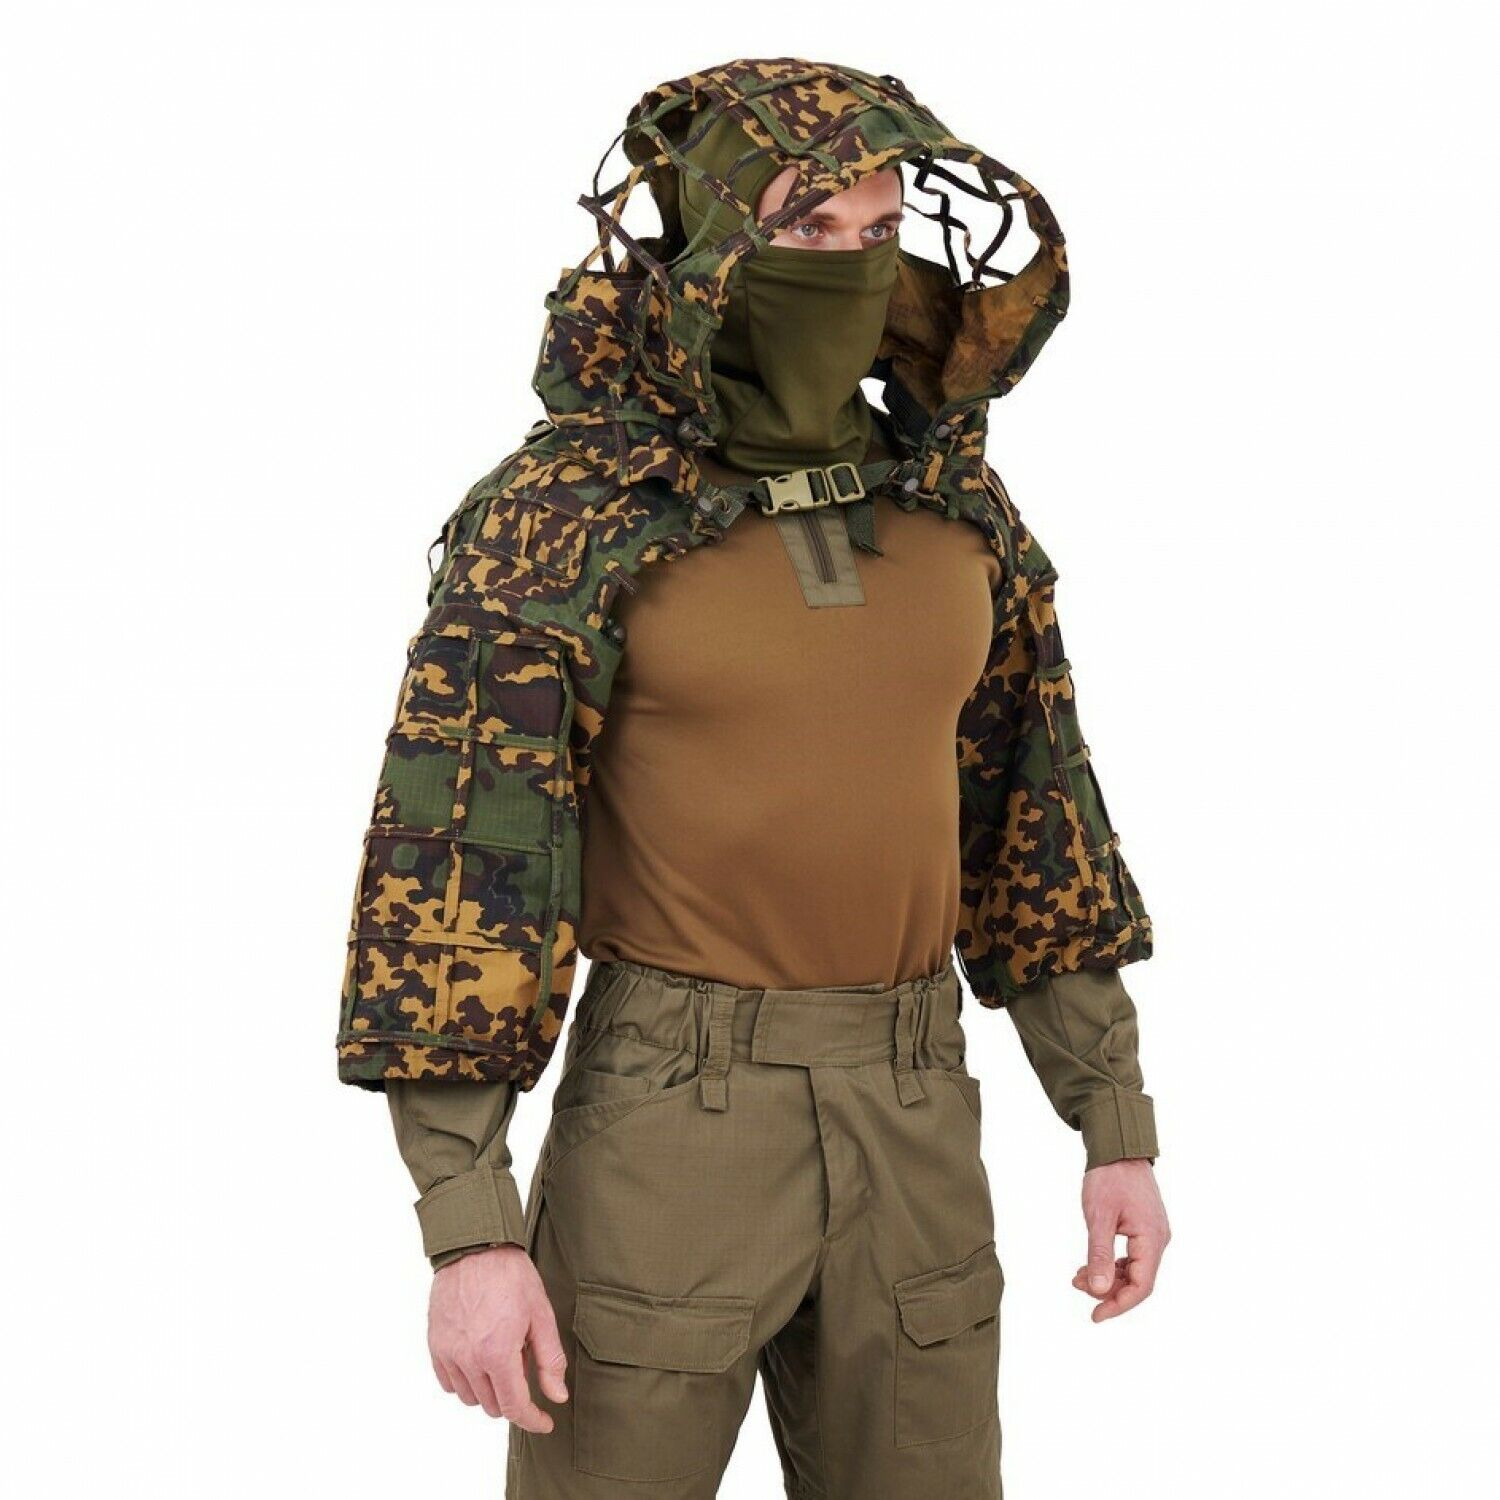 Disguise Sniper  Coat  Scorpion    Viper Hood Partizan SS-Summer by Giena Tactics  good price